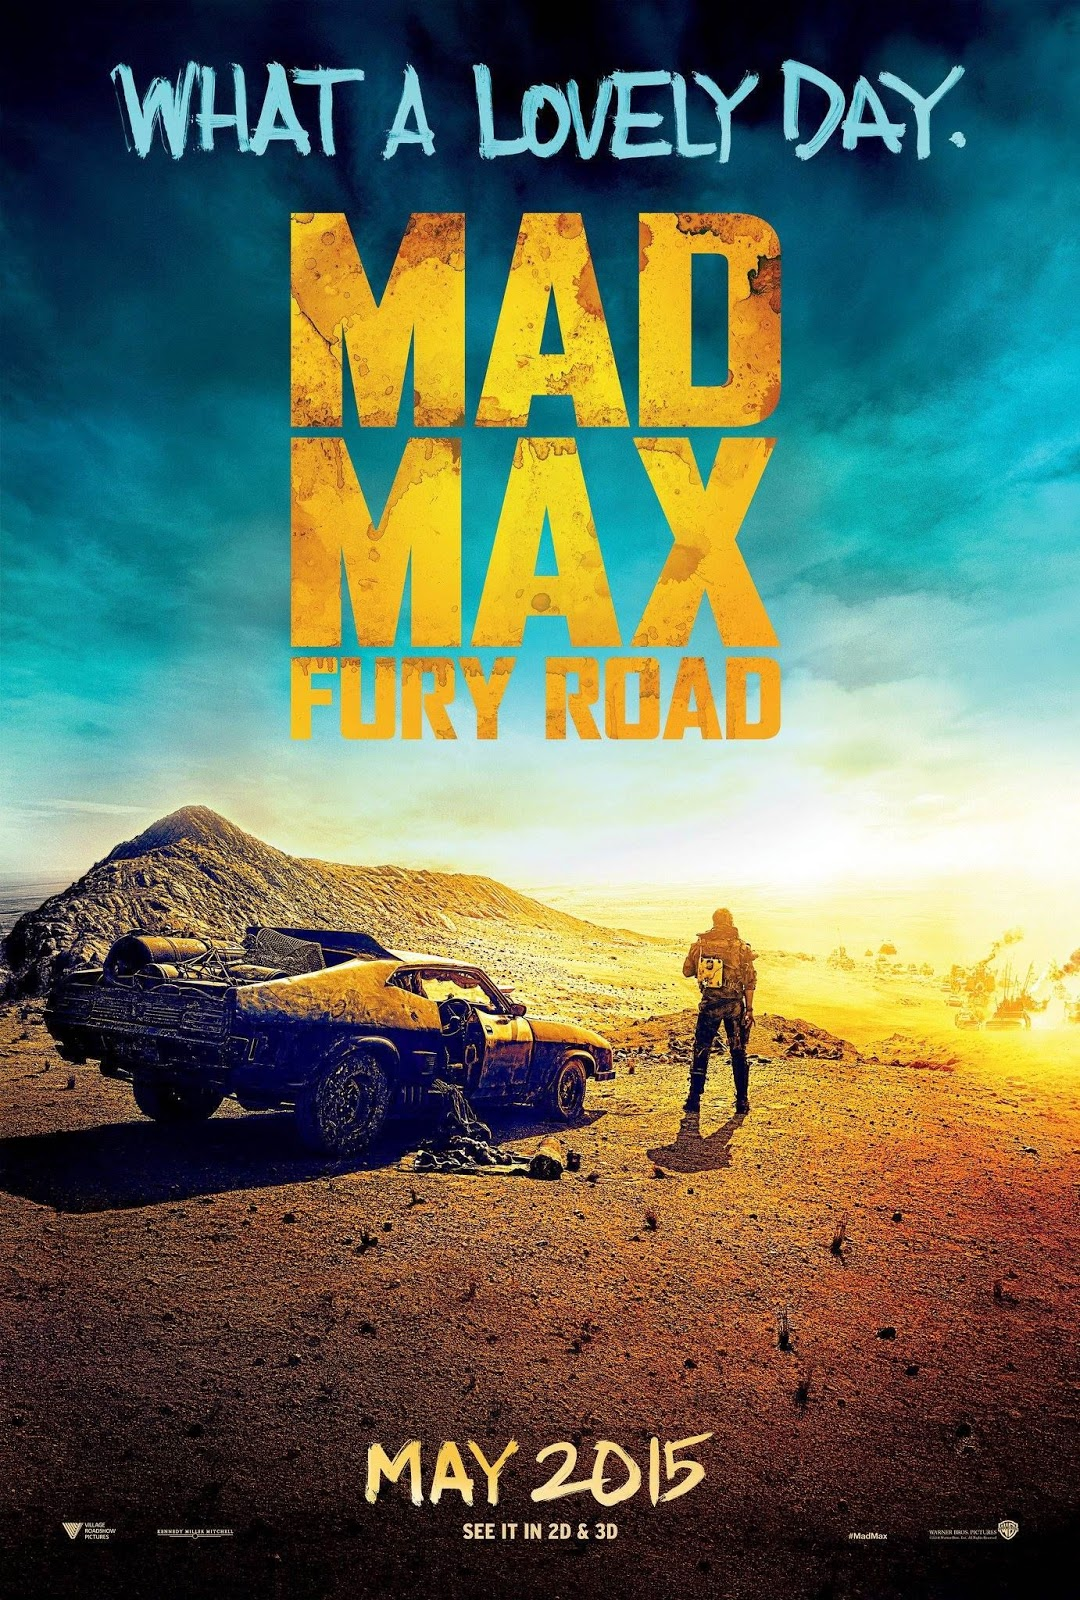 It came from the cineplex mad max fury road